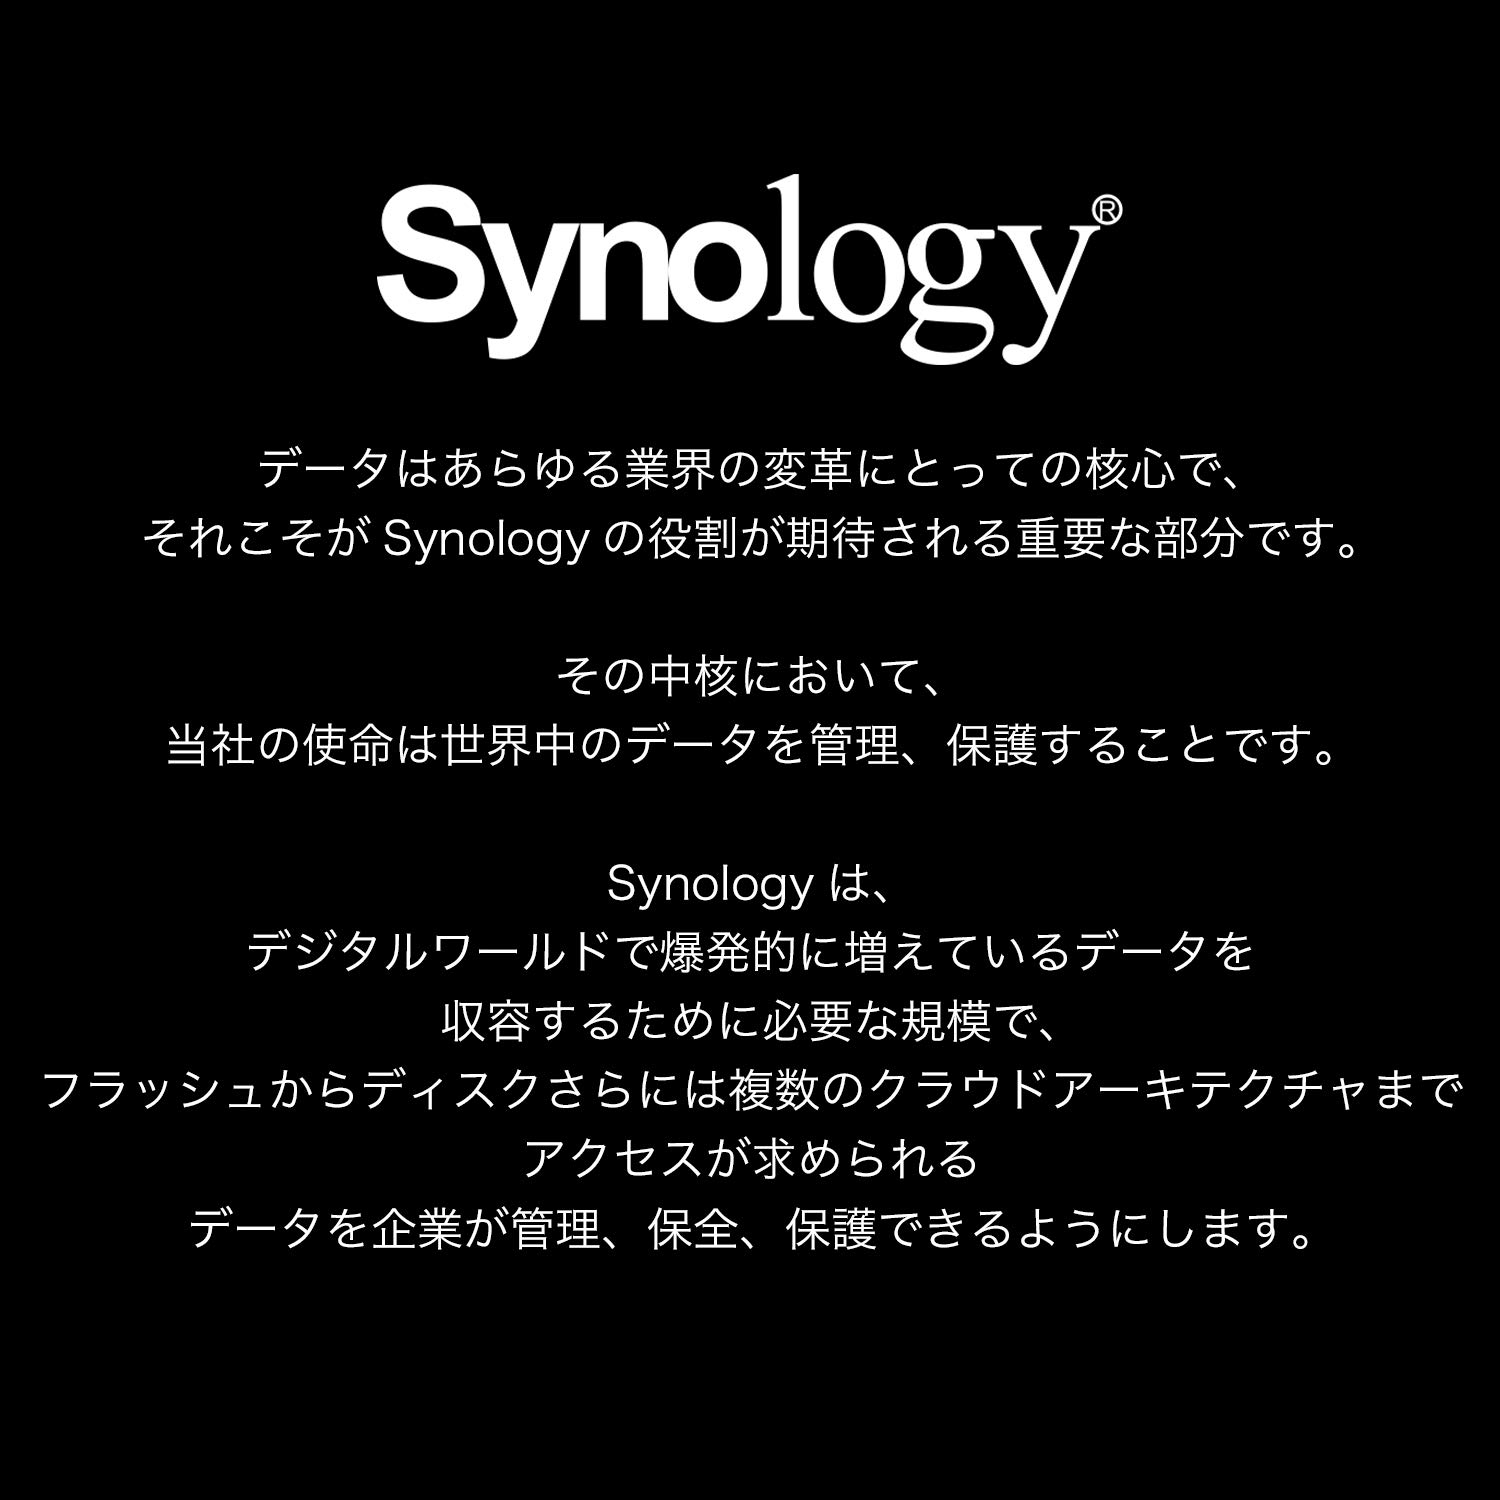 Synology M.2 Adapter Card (M2D18) by Synology (Image #4)